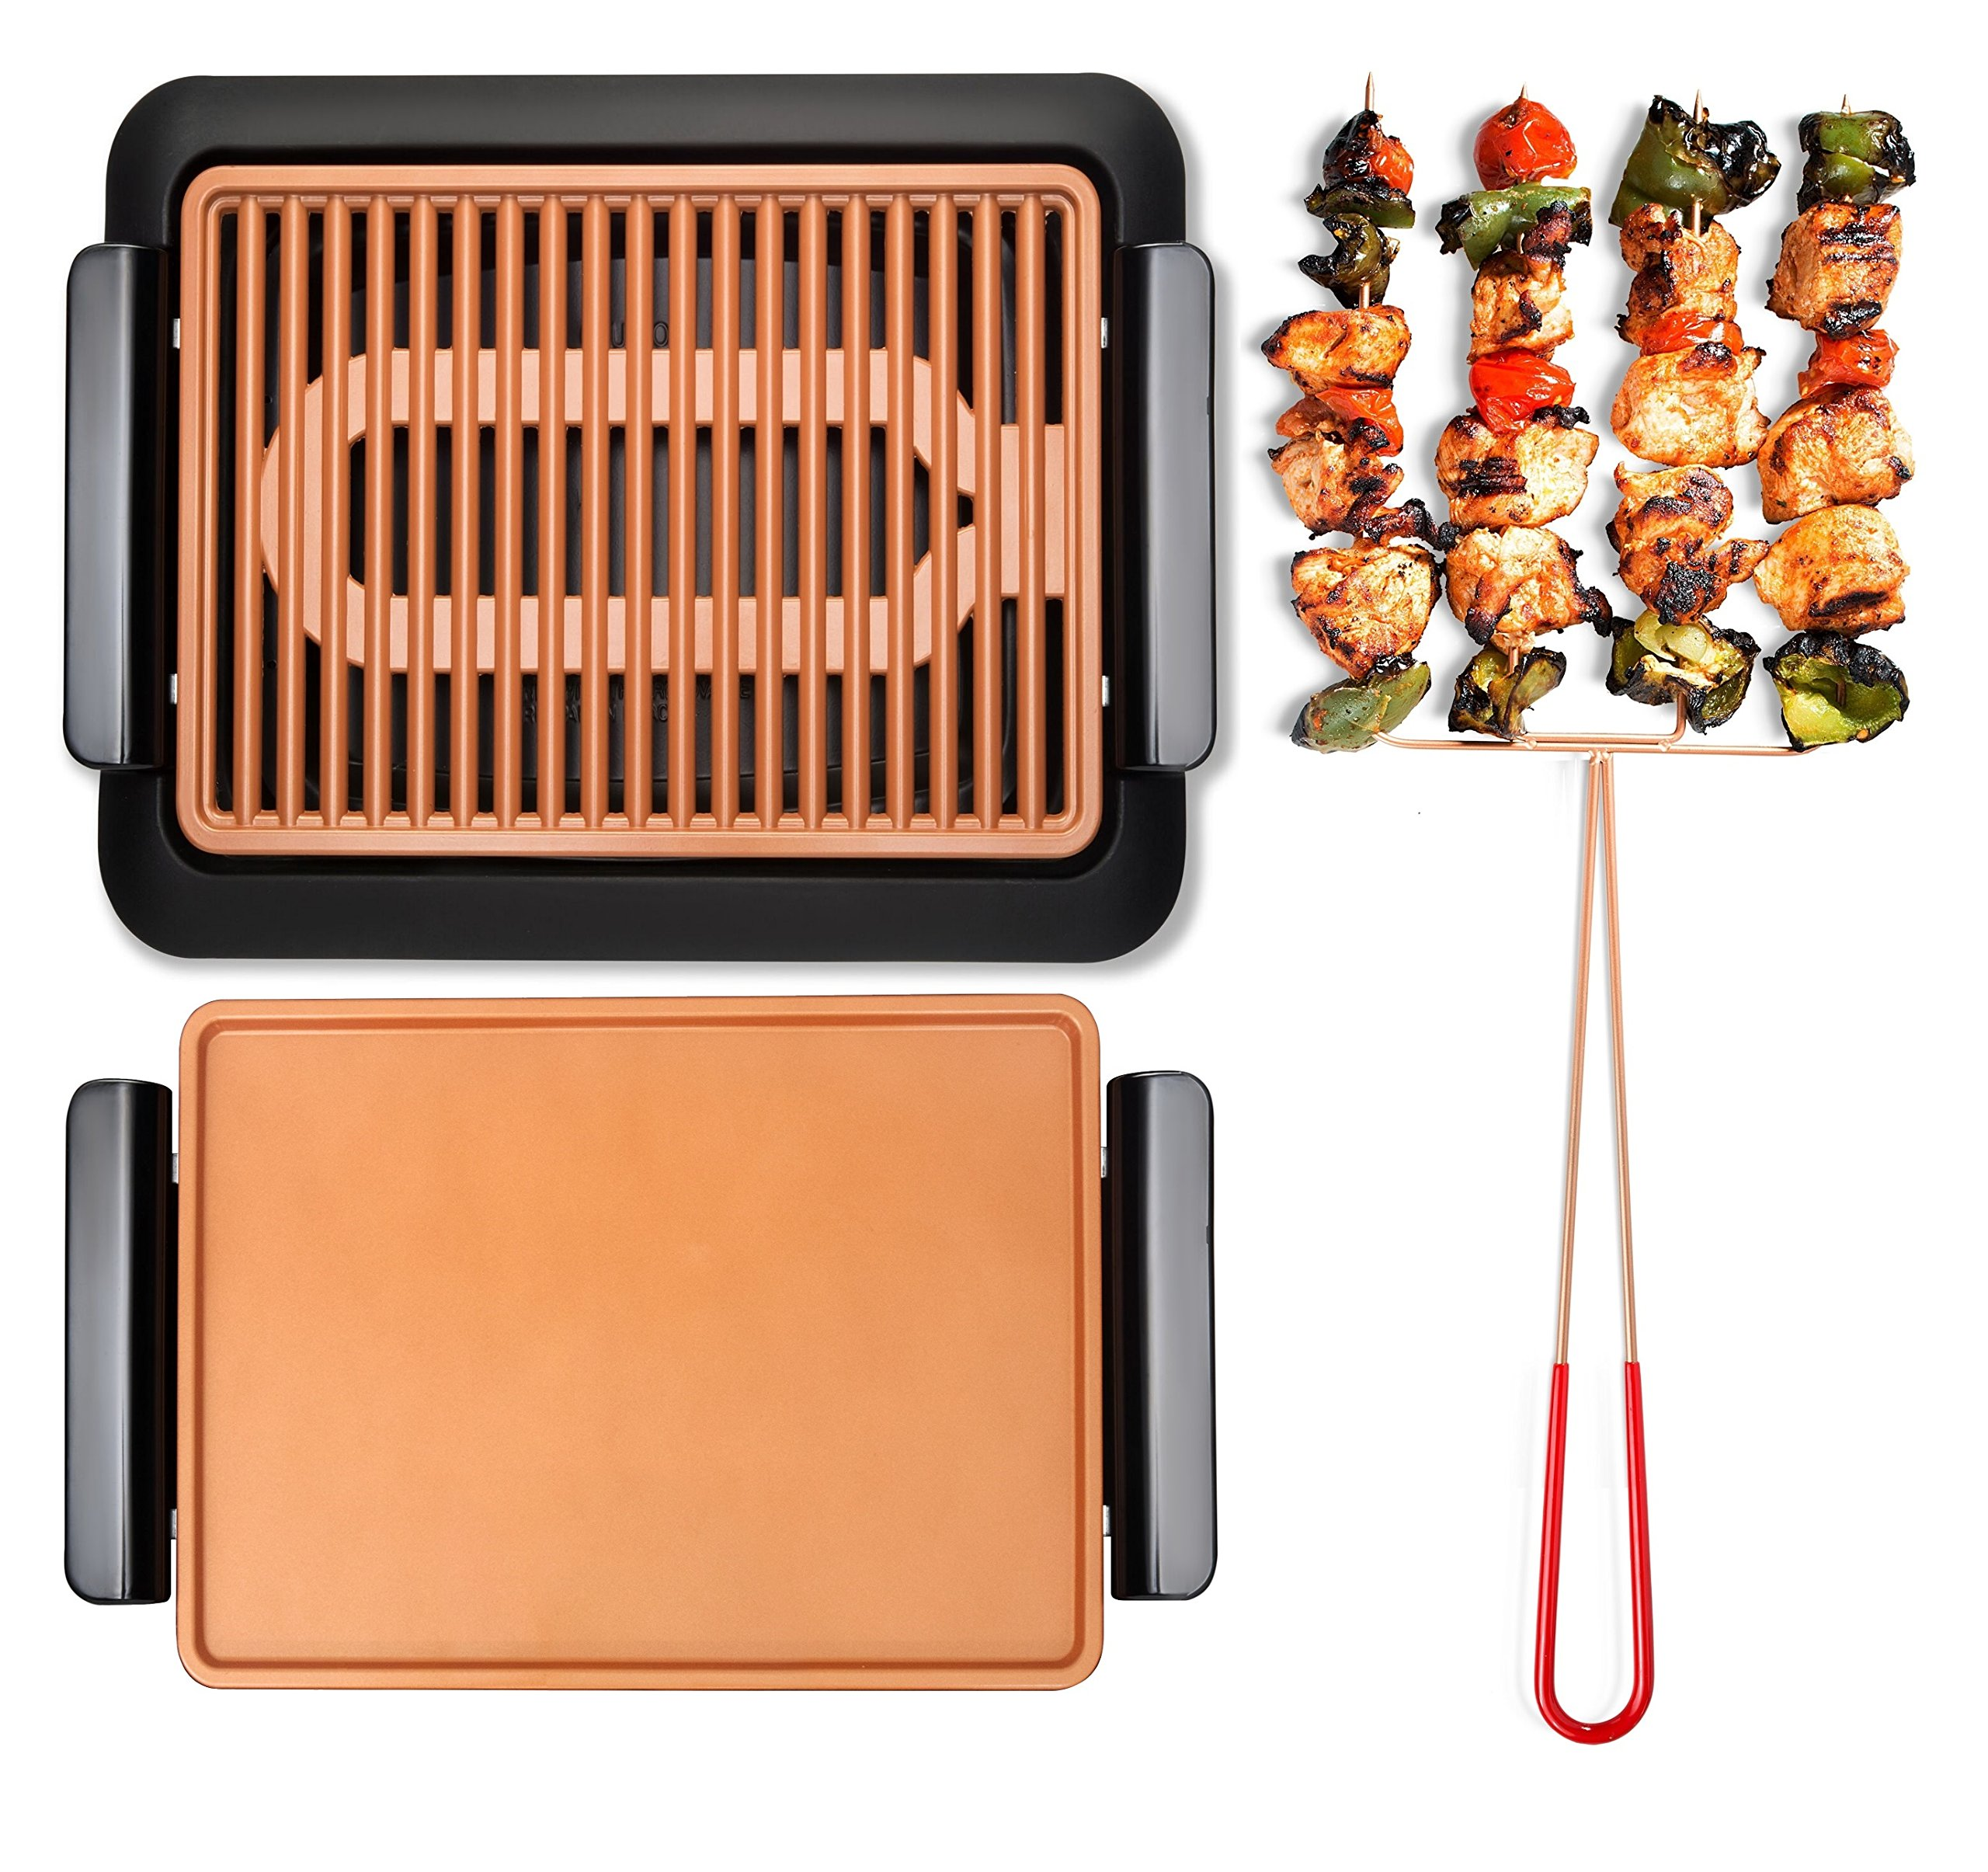 GOTHAM STEEL Smokeless Electric Grill, Griddle, and Pitchfork, Indoor BBQ and Nonstick As Seen On TV (Original) by GOTHAM STEEL